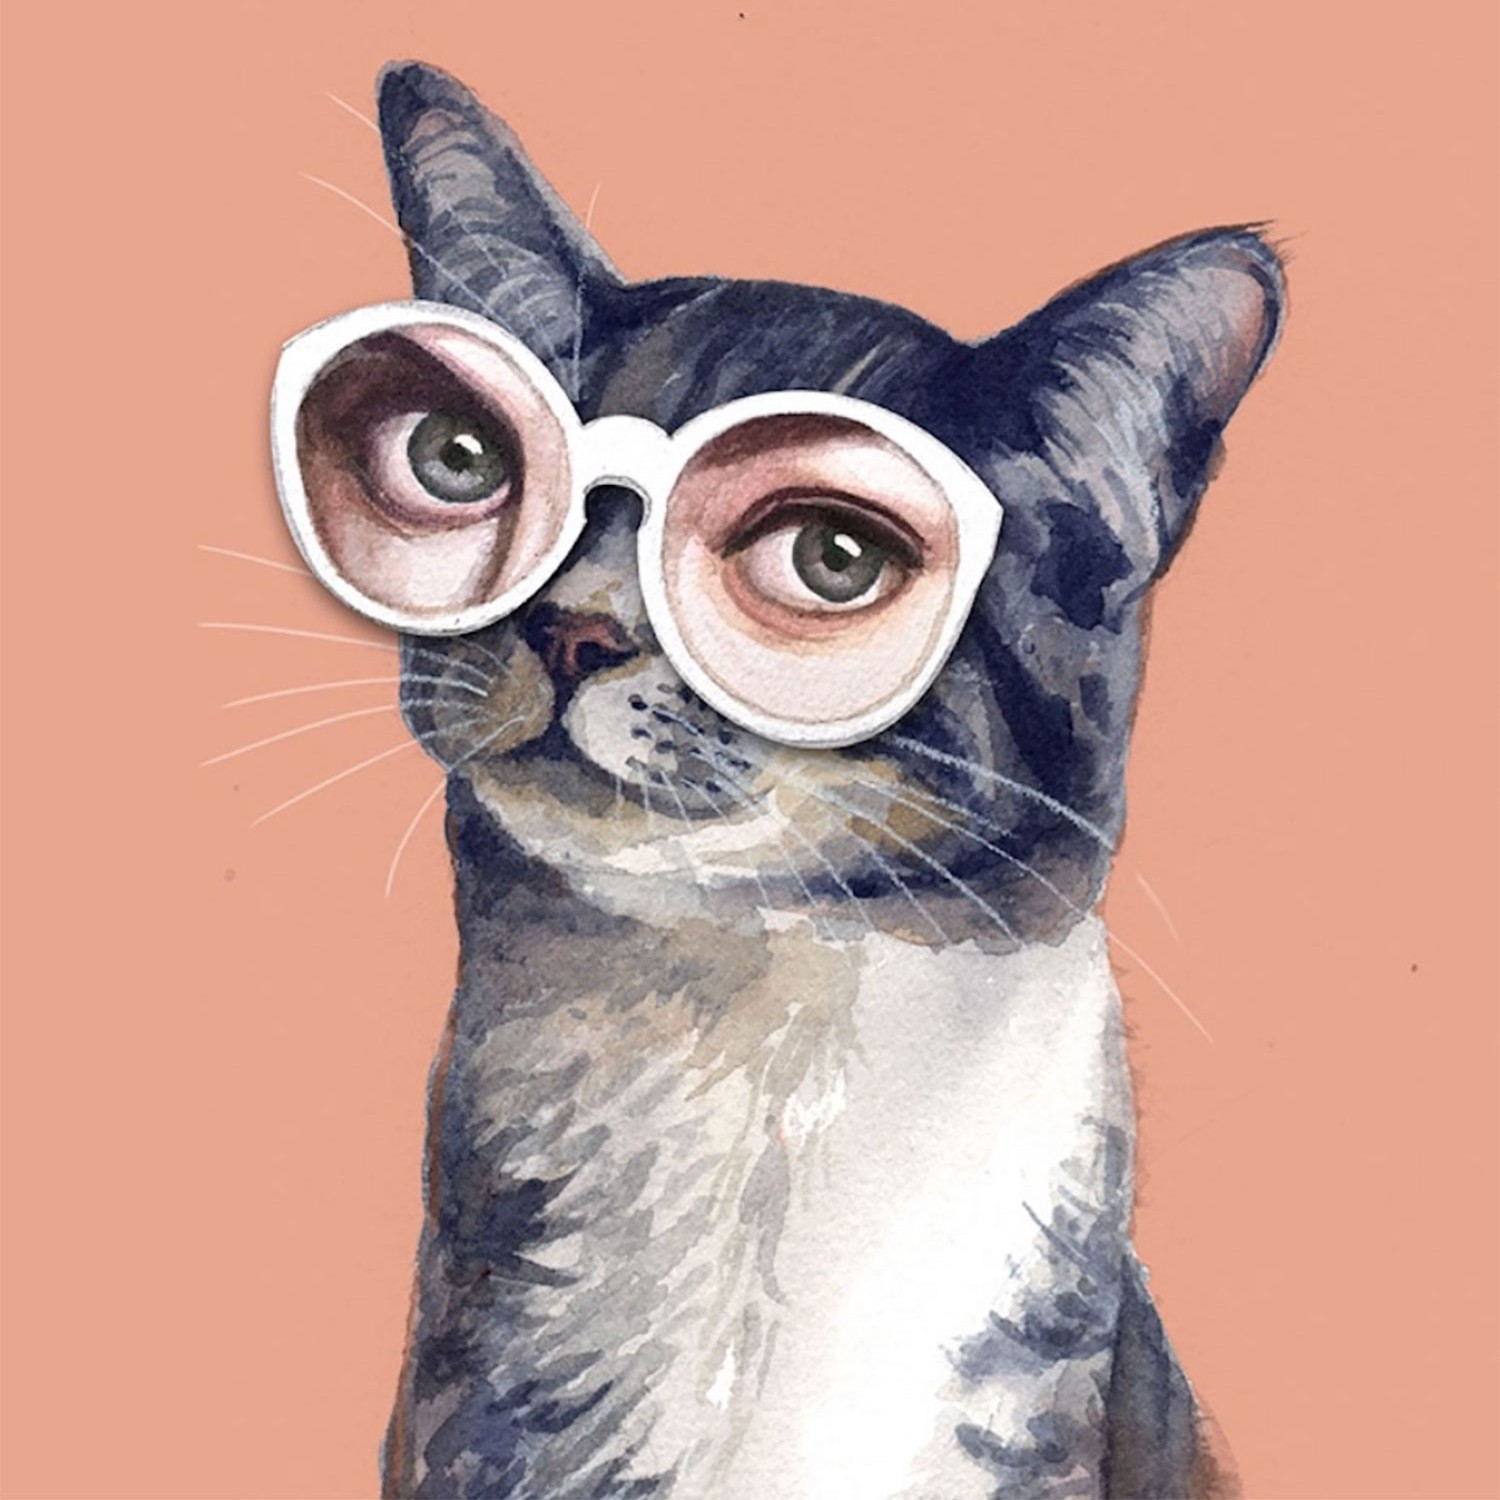 illustration of a cat wearing glasses.